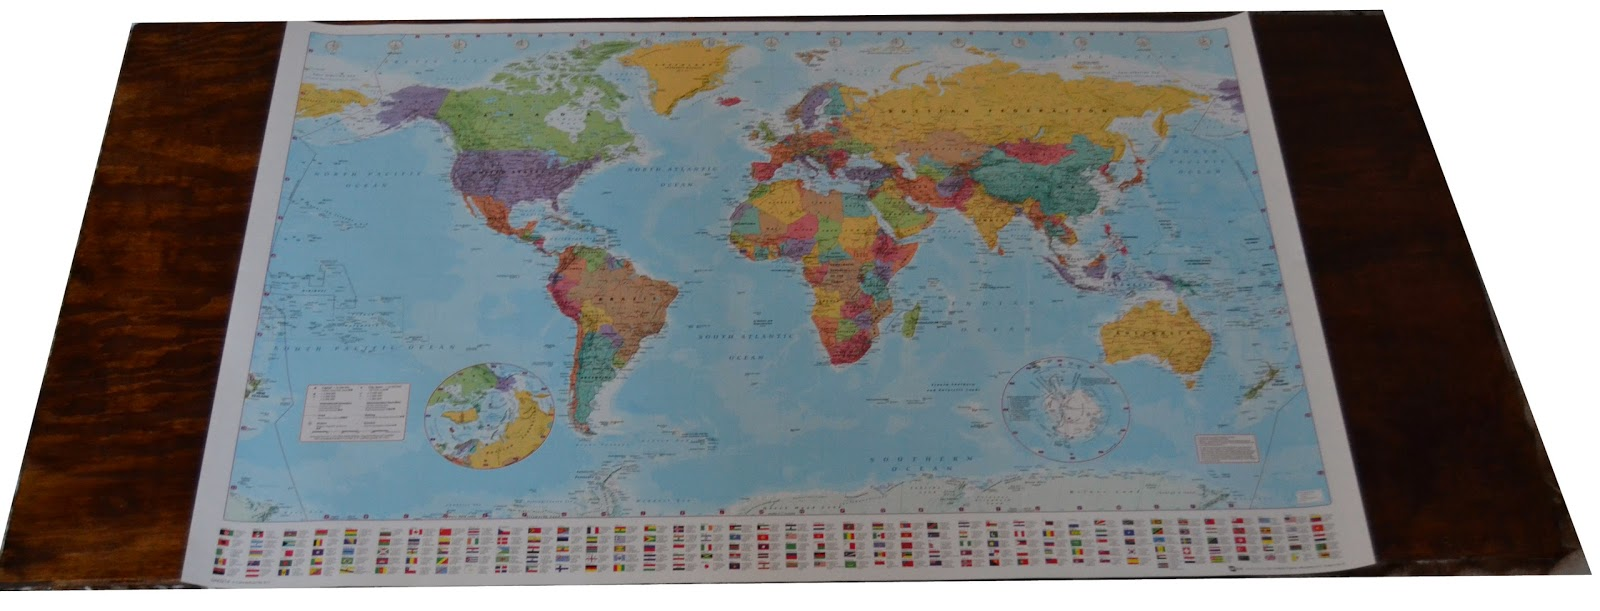 The Crafty Novice: DIY: String Art World Map